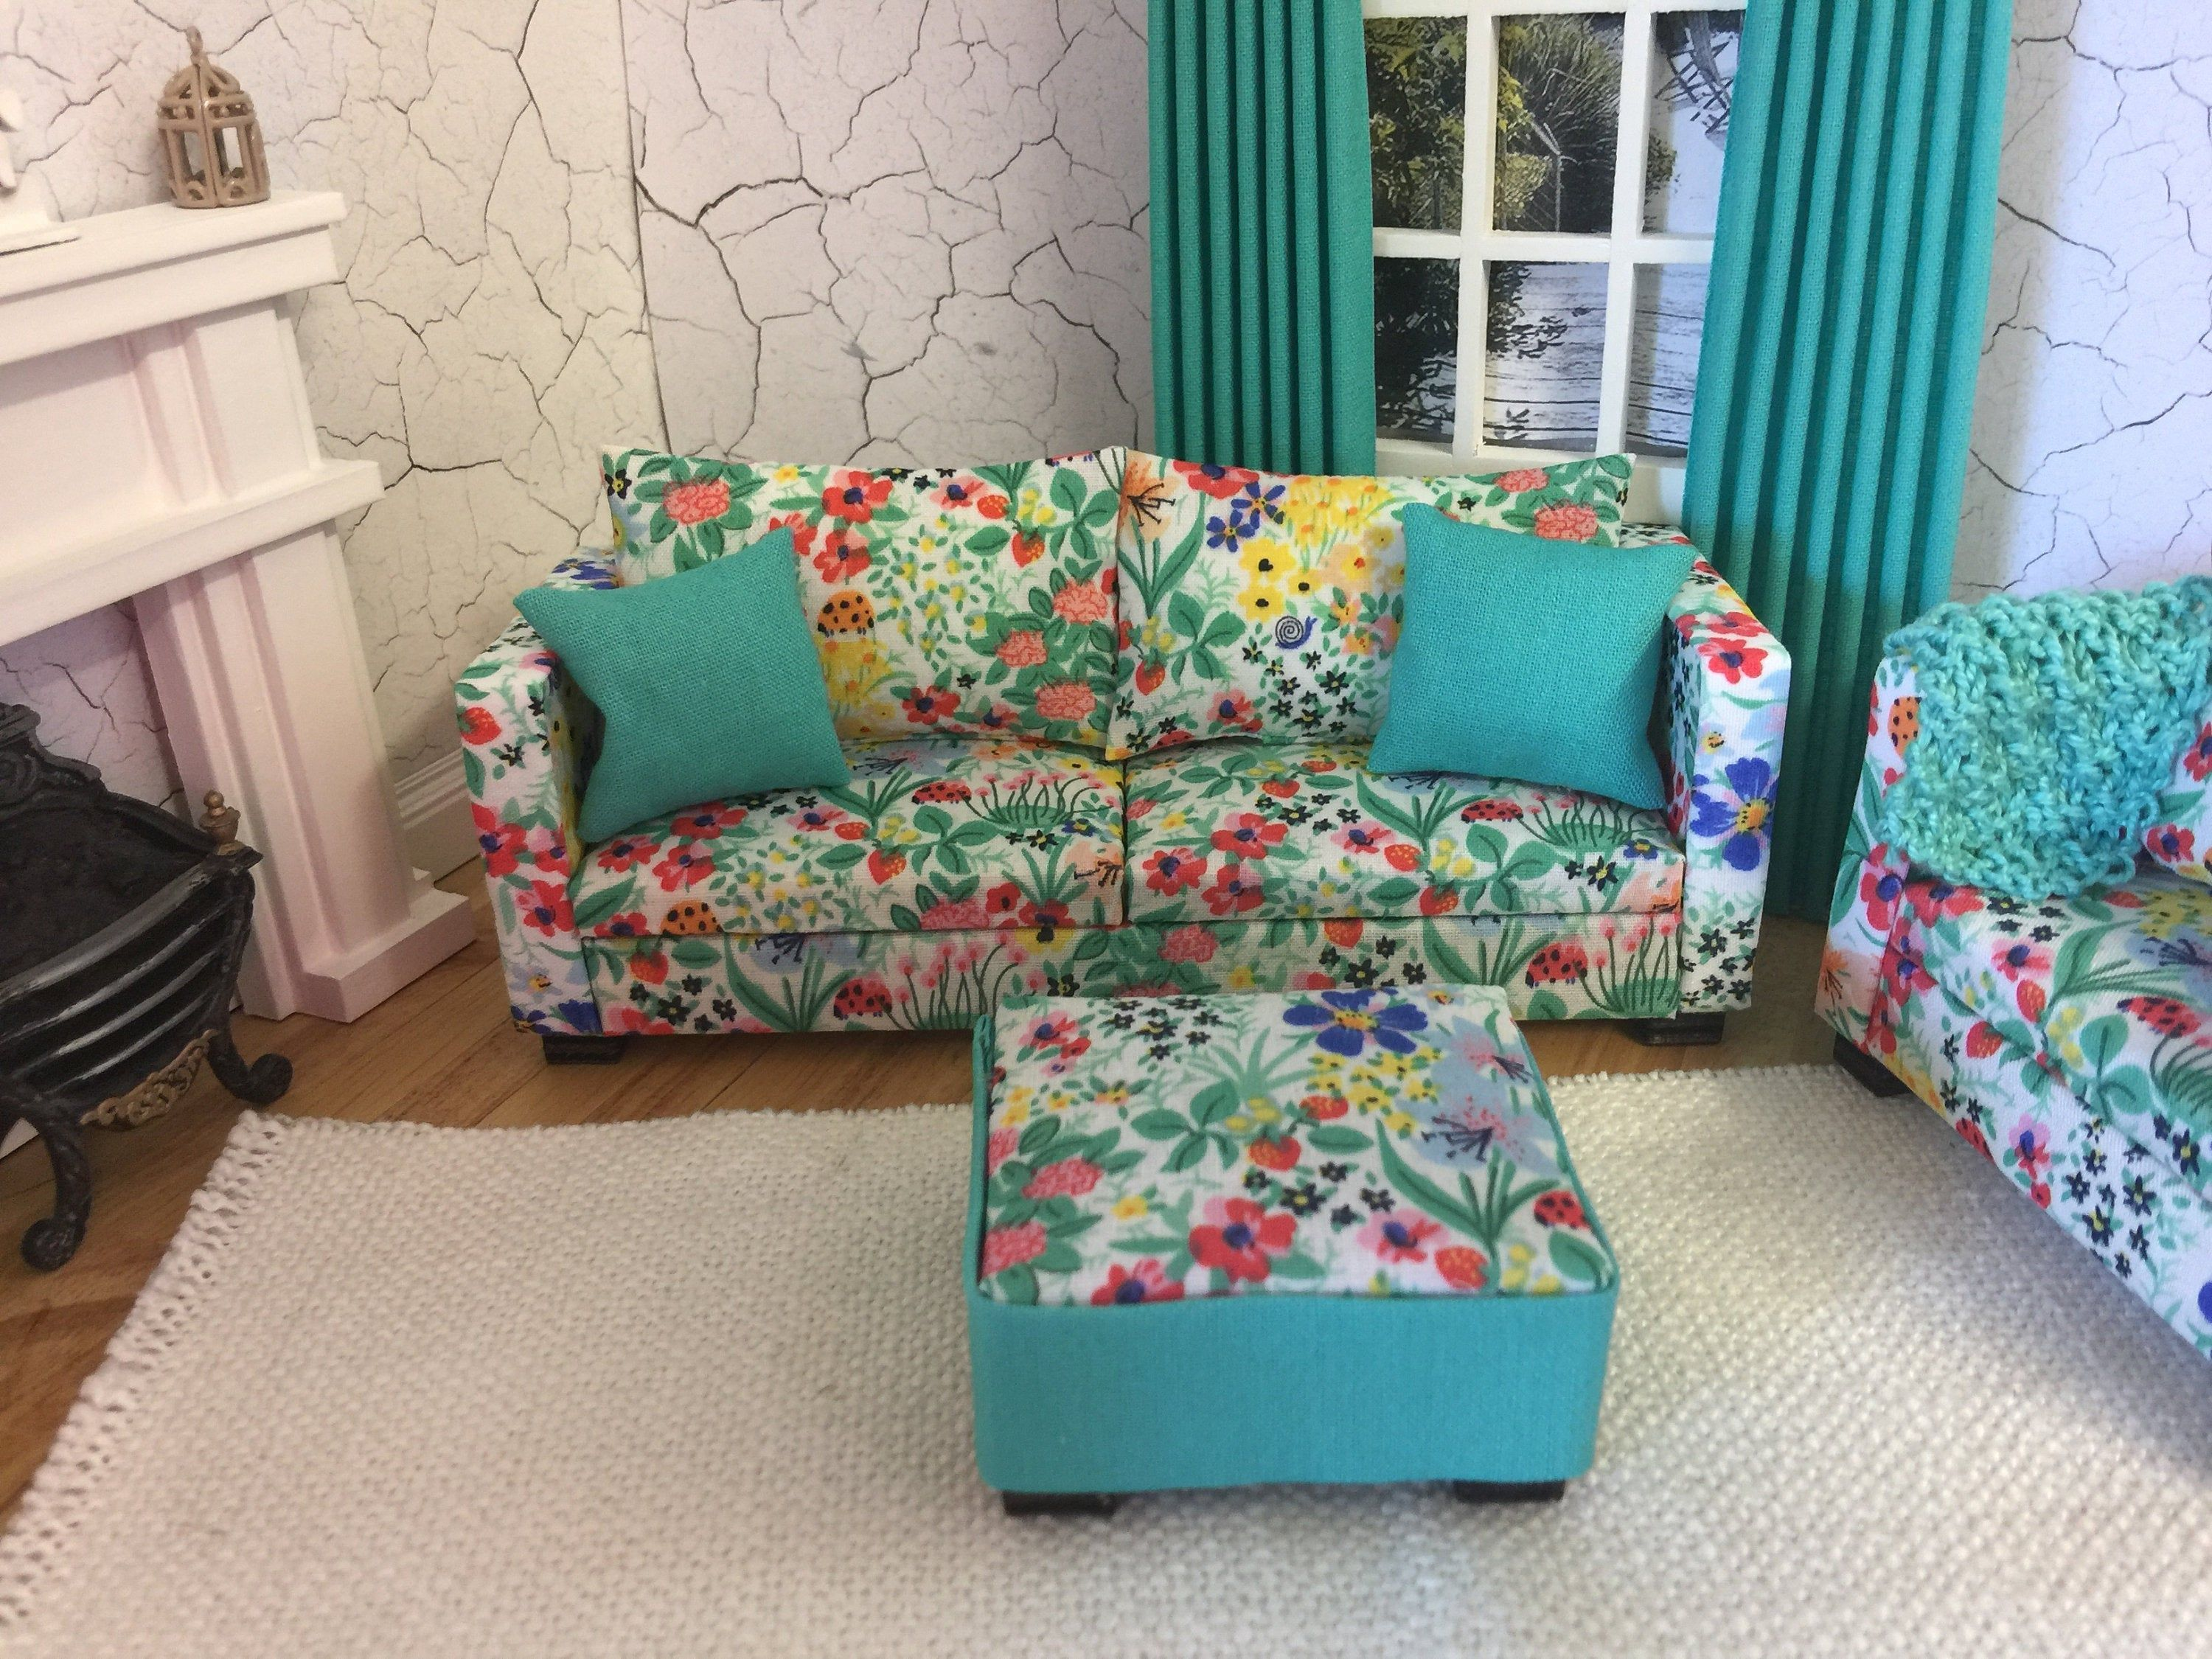 3 x Sofa Set Furniture Living Room Couch Flower Dollhouse Miniature 1:12 Scale